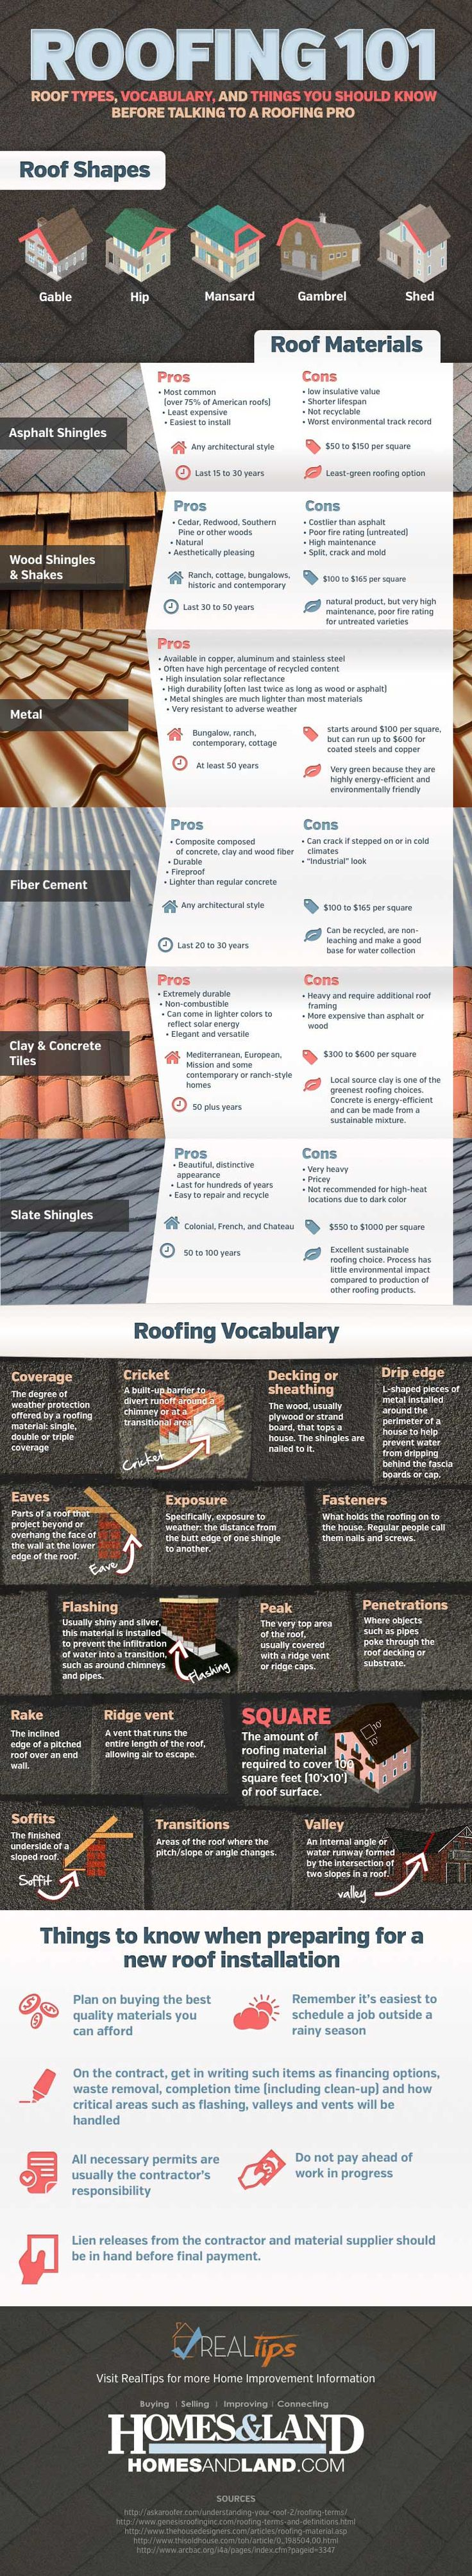 Roof Types, Vocabulary and Things You Should Know